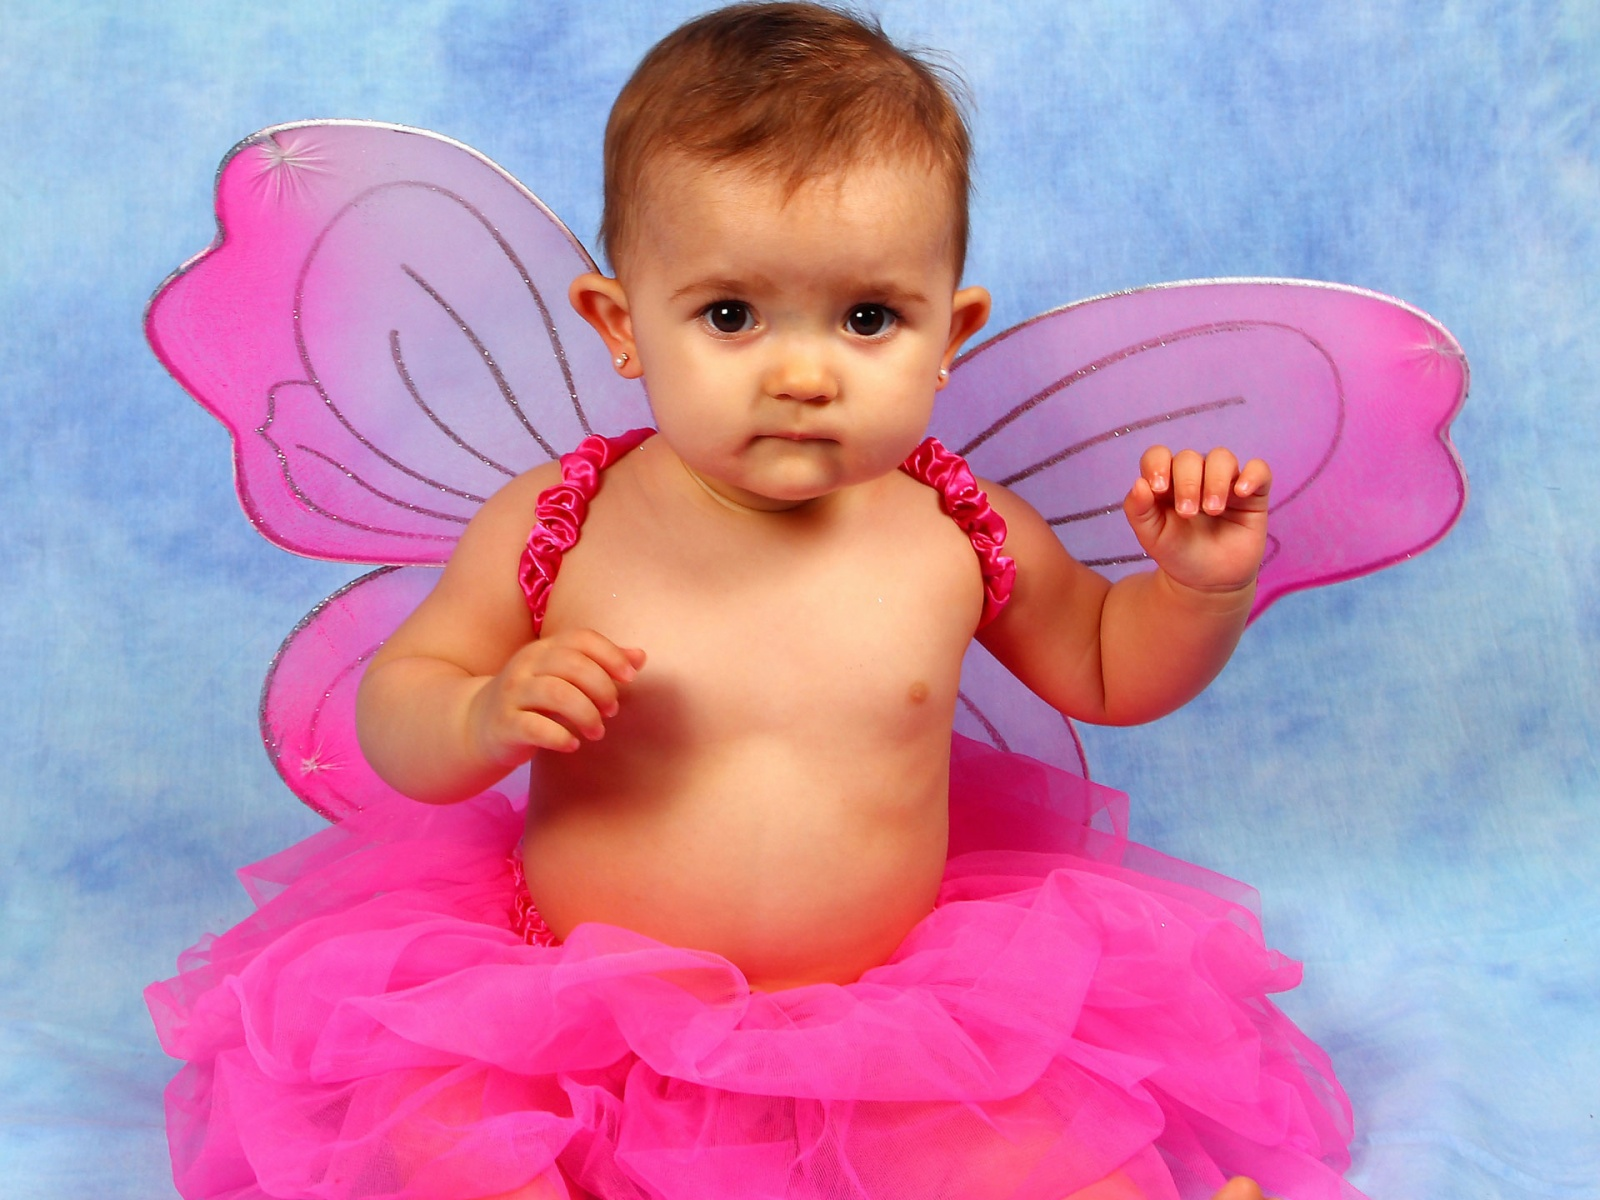 3d wallpaper baby girl wallpapers for free download about 3746 cute baby girl voltagebd Gallery